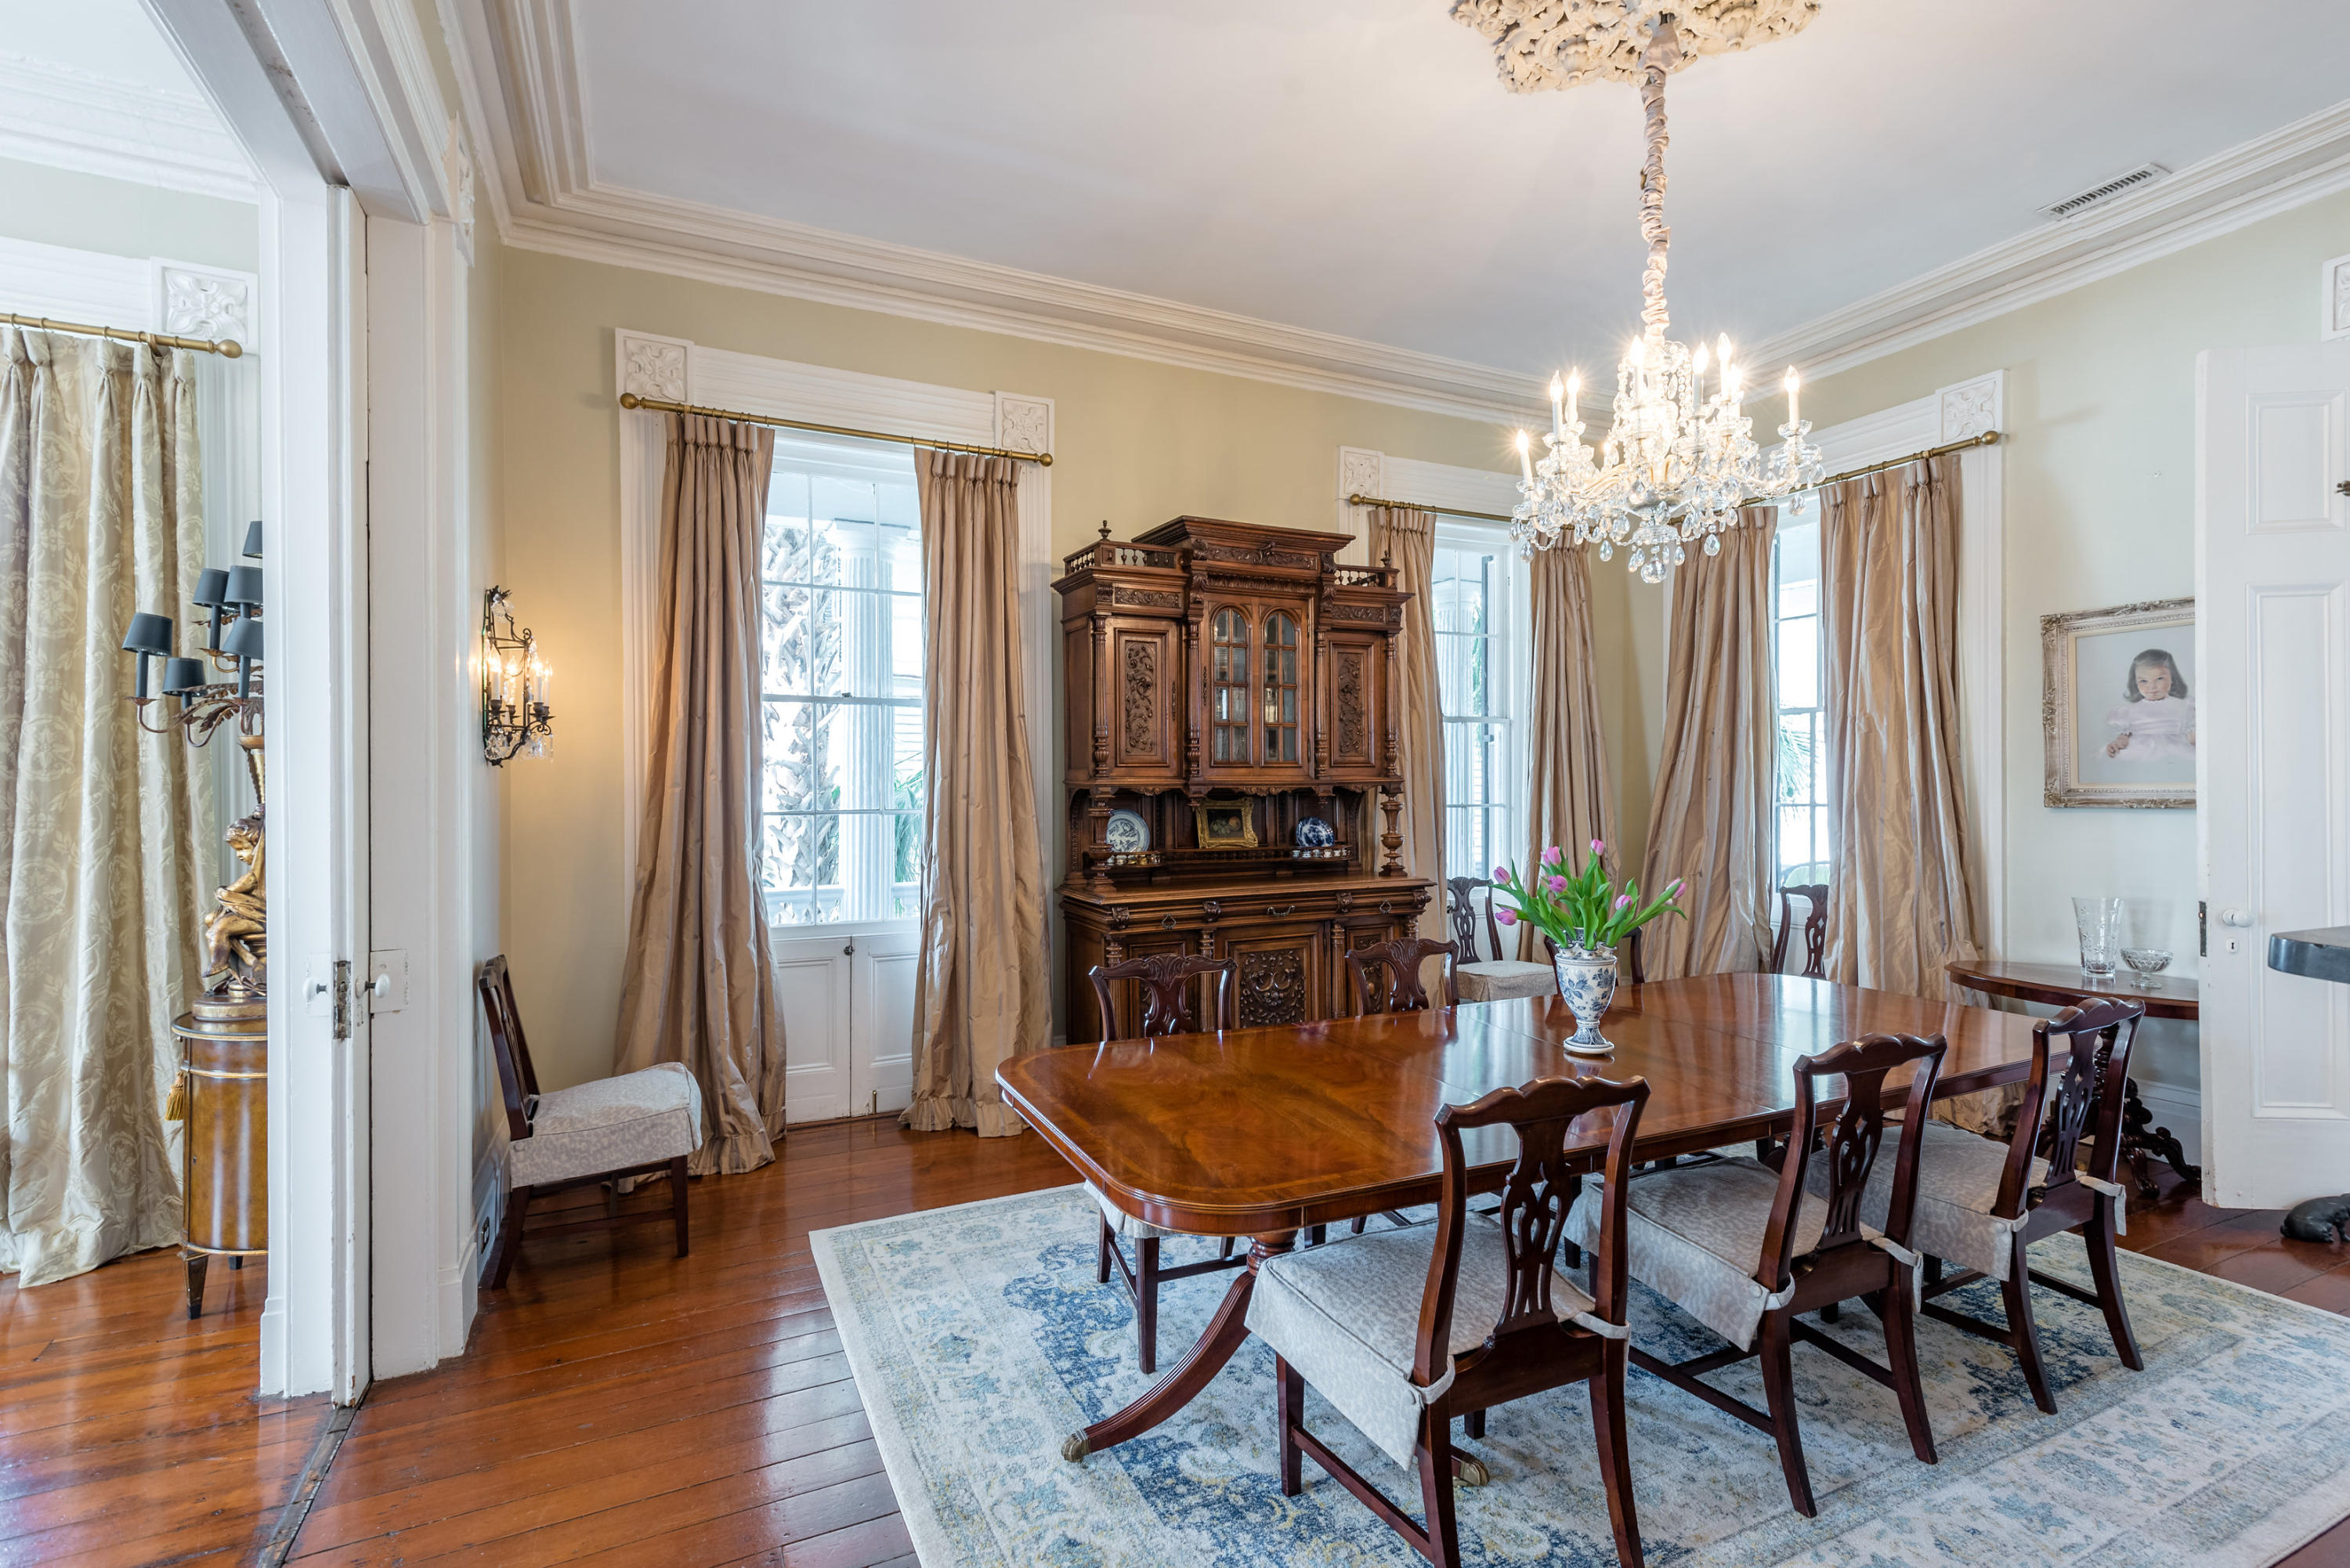 South of Broad Homes For Sale - 48 South Battery, Charleston, SC - 39